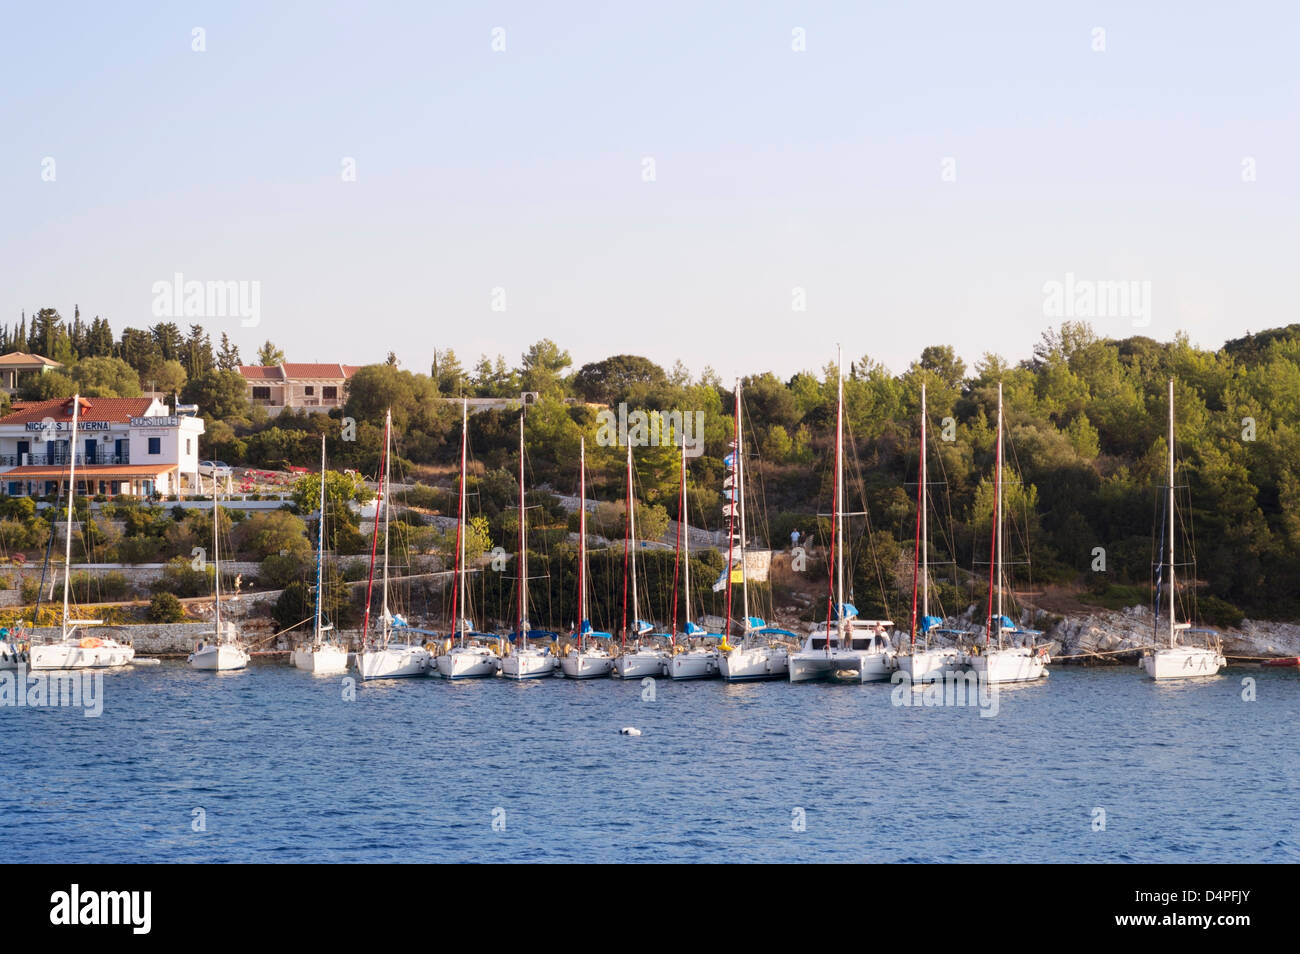 Cephalonia, Greece: Flotilla of yachts moored at the fishing port of Fiskardo in the north of Kefalonia - Stock Image